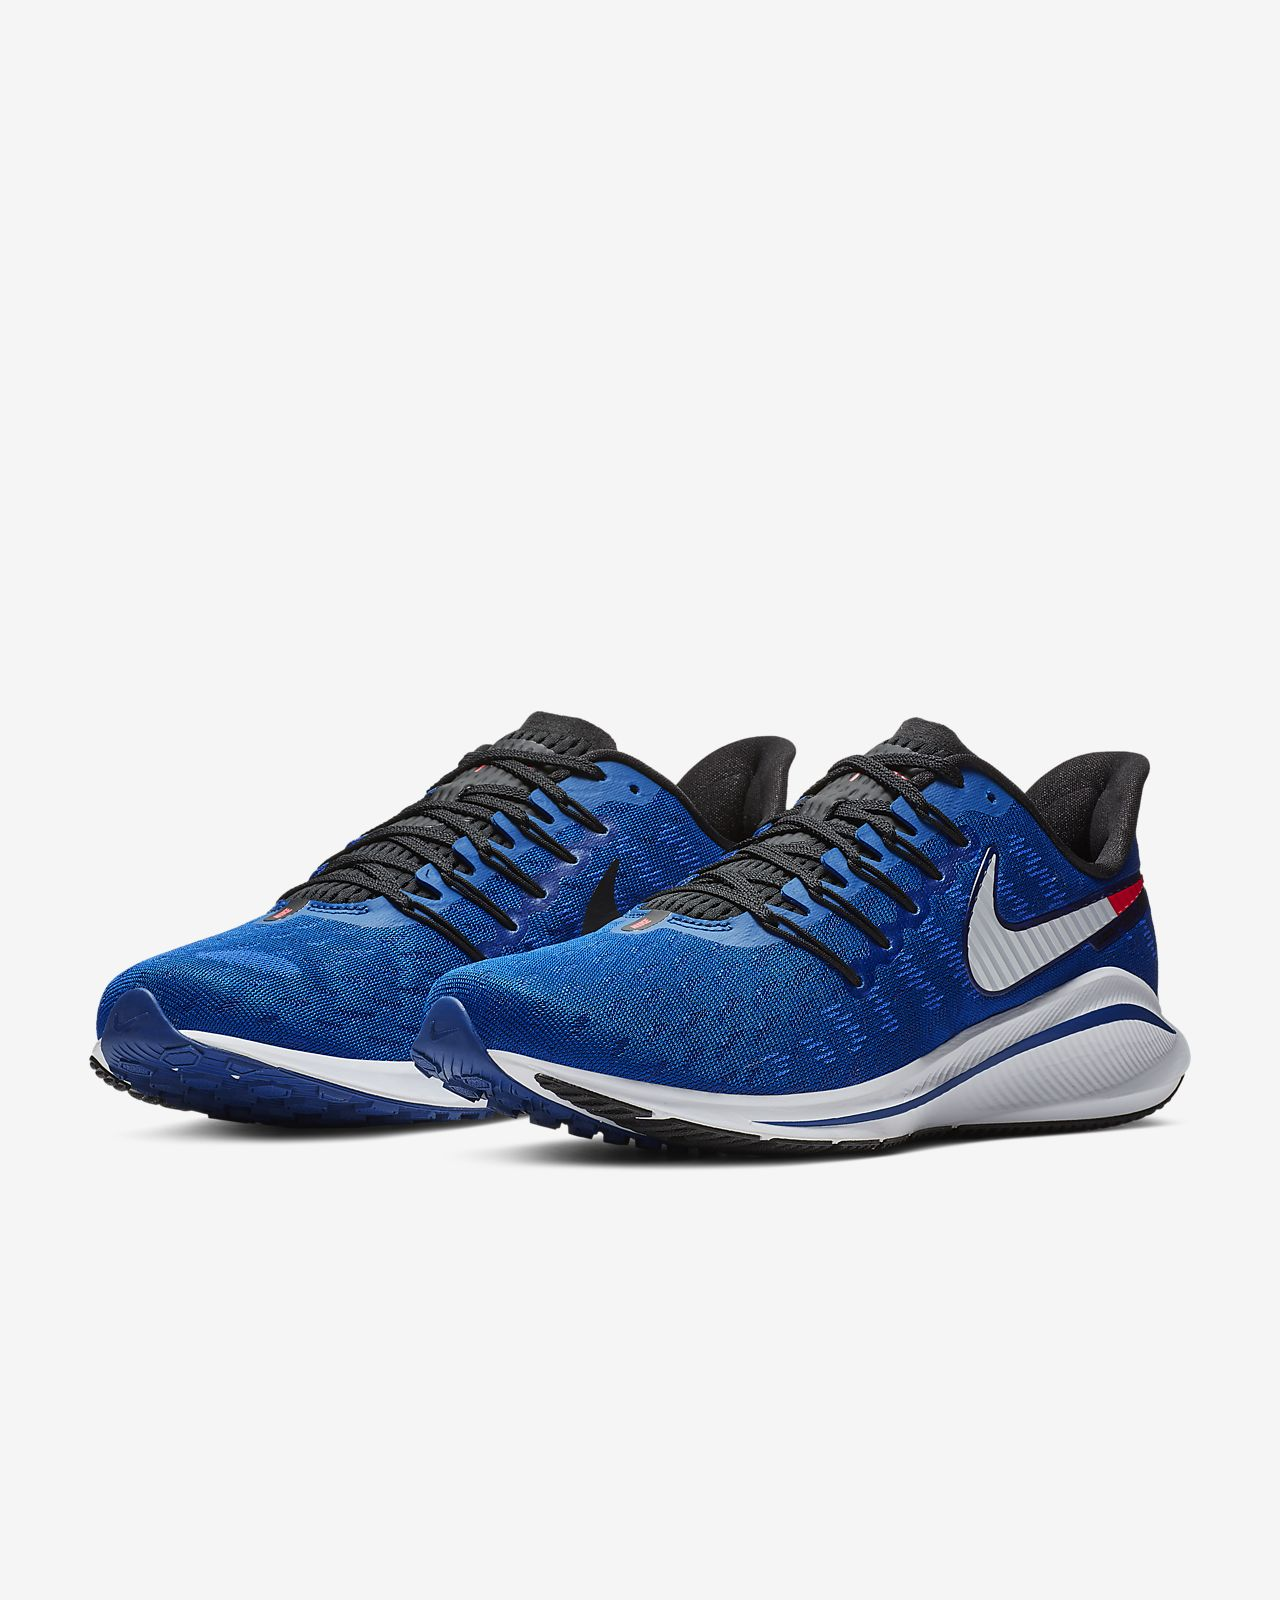 157b6cbc794 Nike Air Zoom Vomero 14 Men s Running Shoe. Nike.com CA